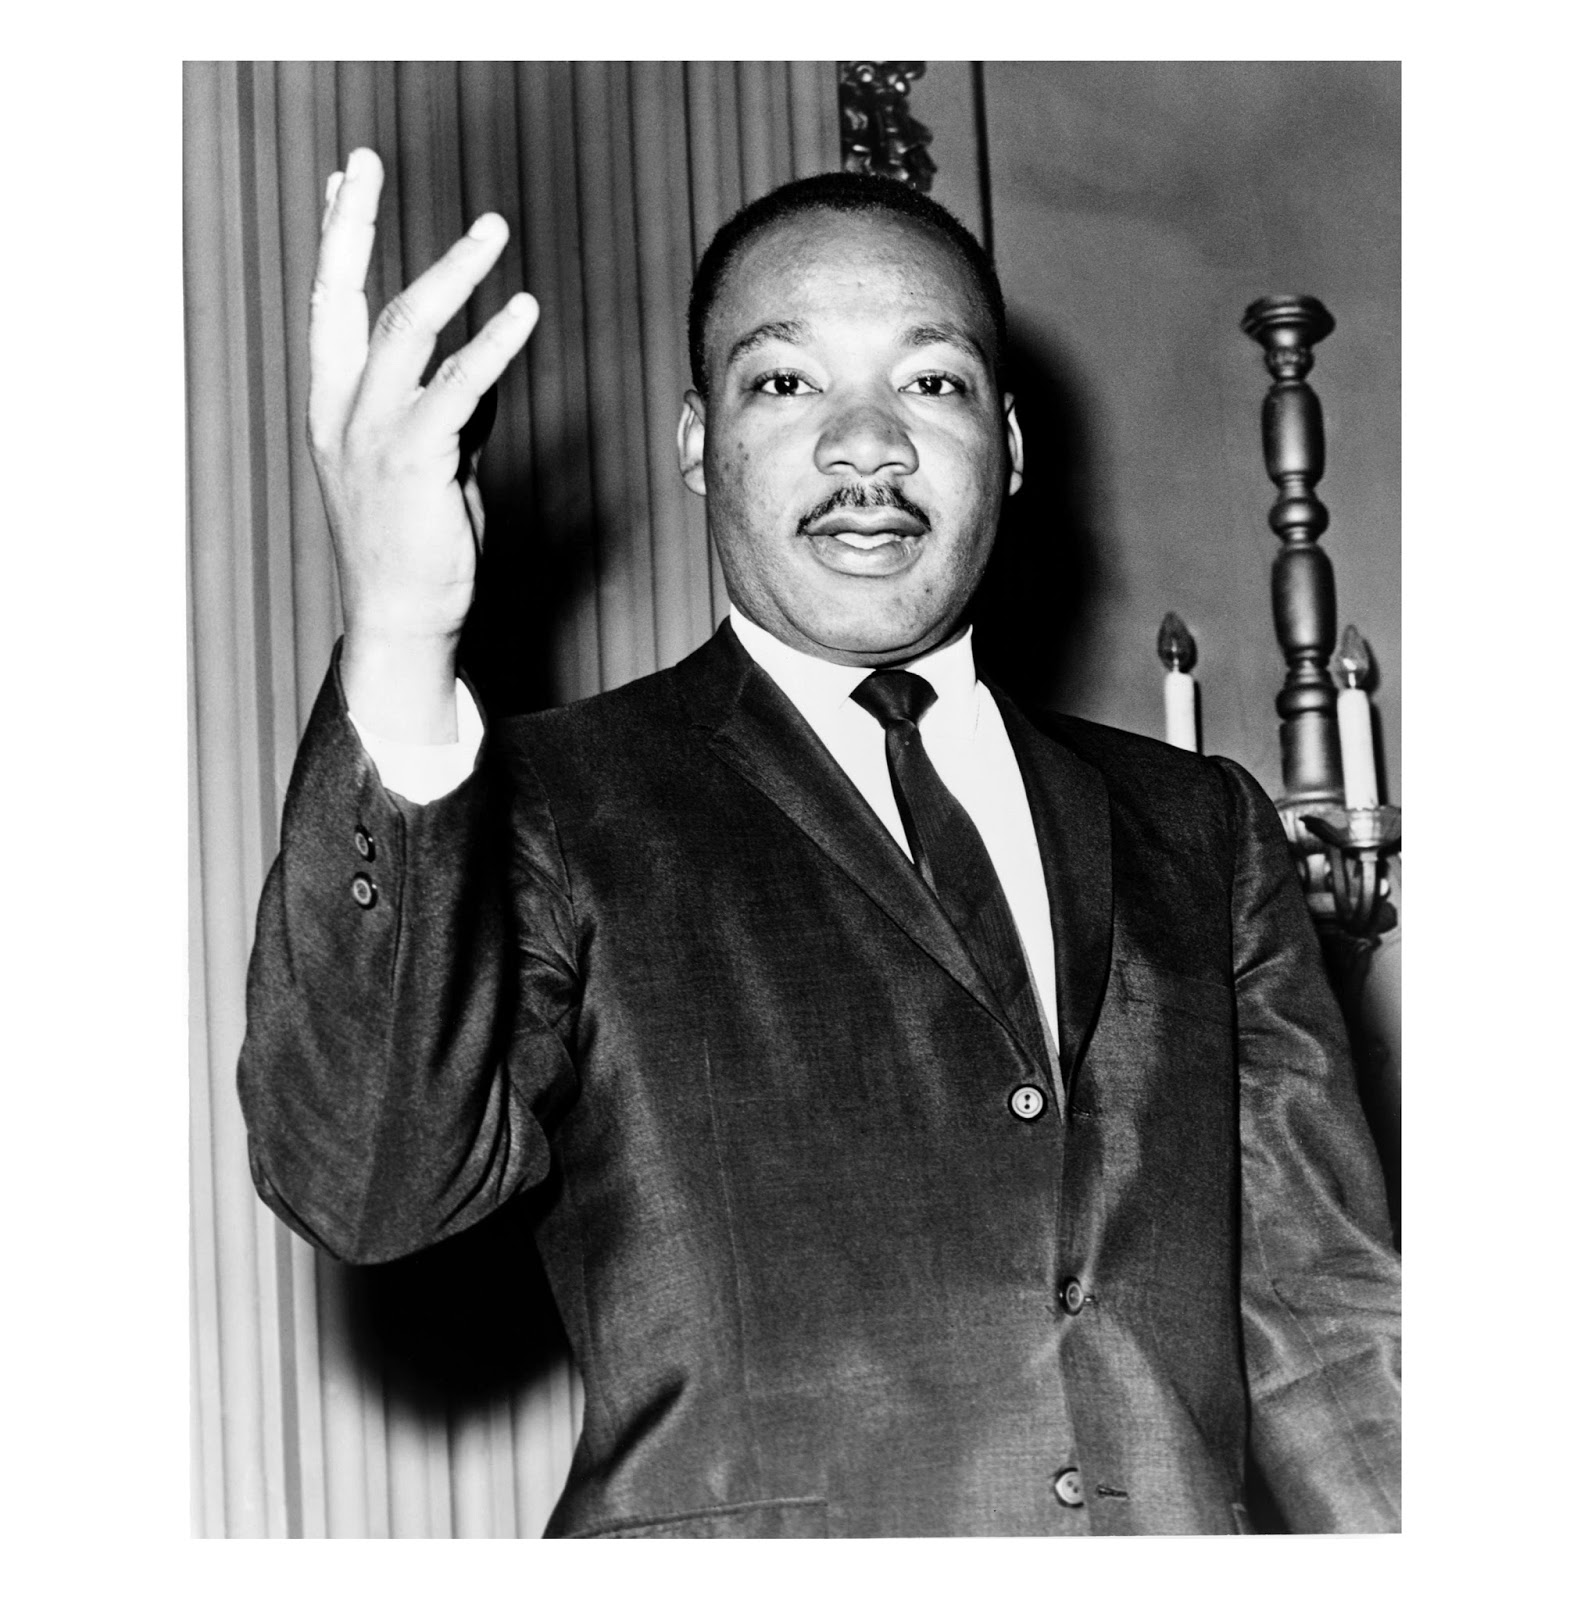 Martin Luther King Jr., biography of the man who changed the civil rights movement forever